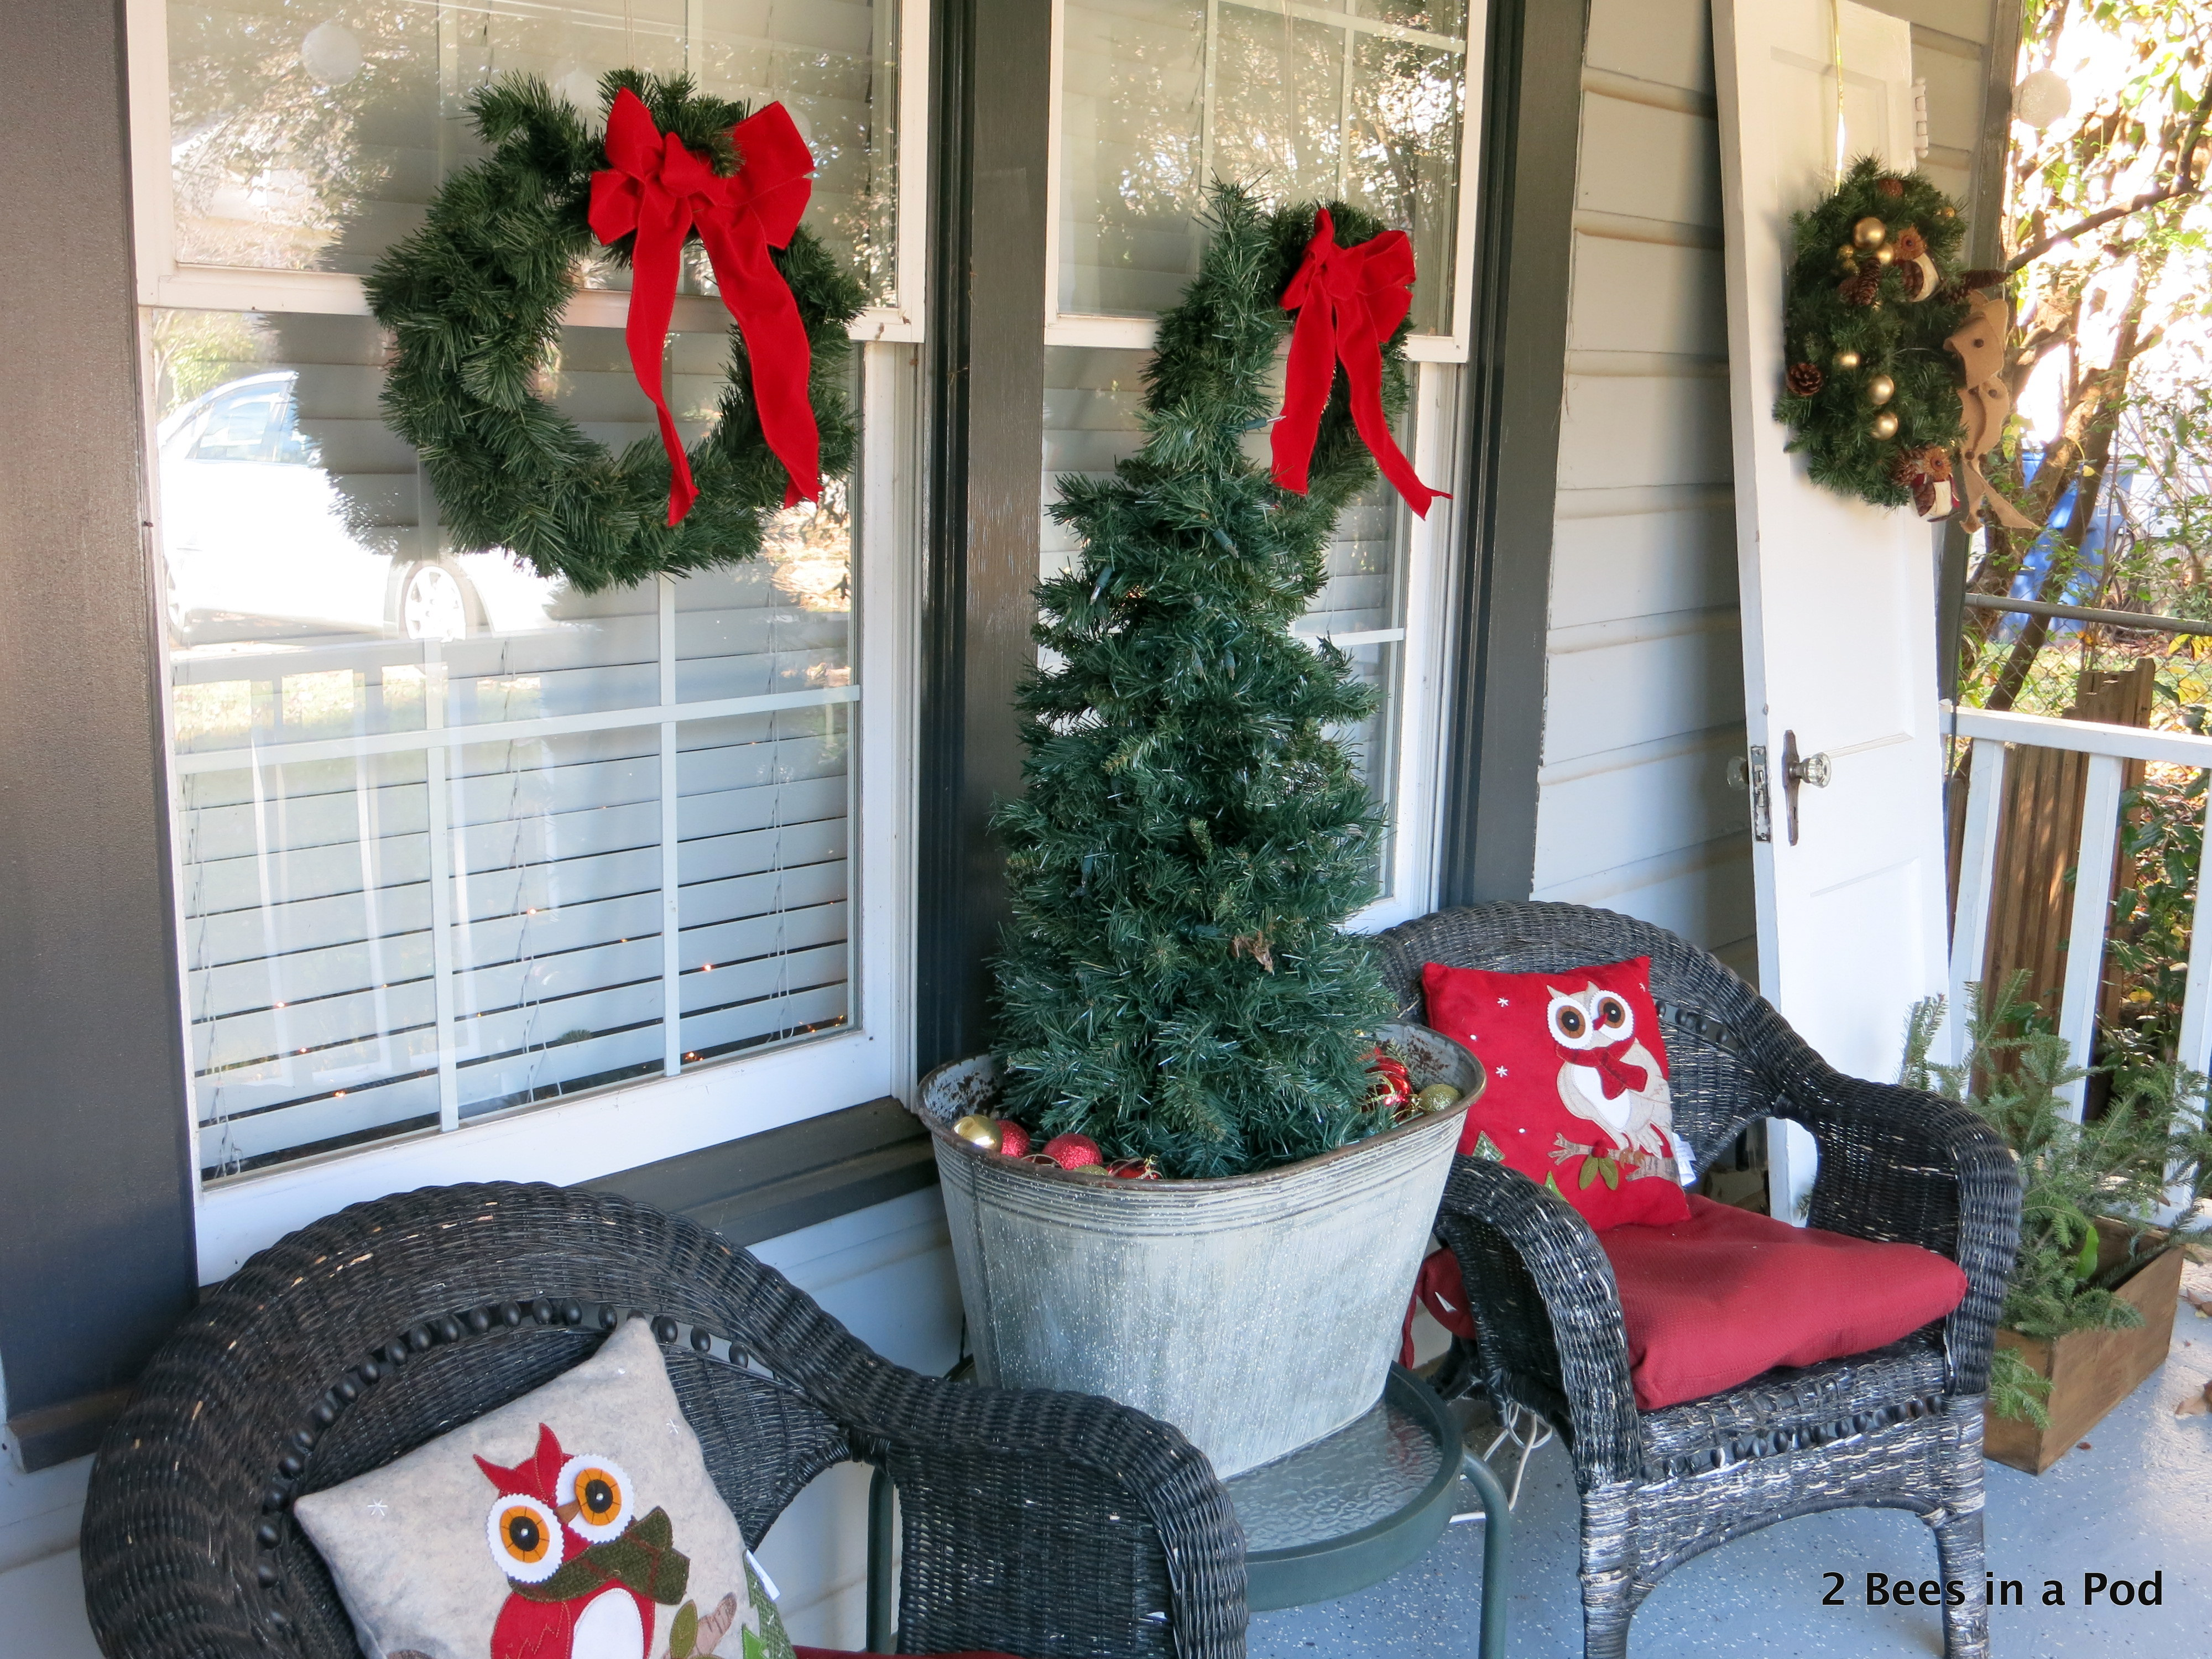 Christmas Home Tour. Exterior Front Porch with owl pillows, tree in galvanized bucket and wreaths